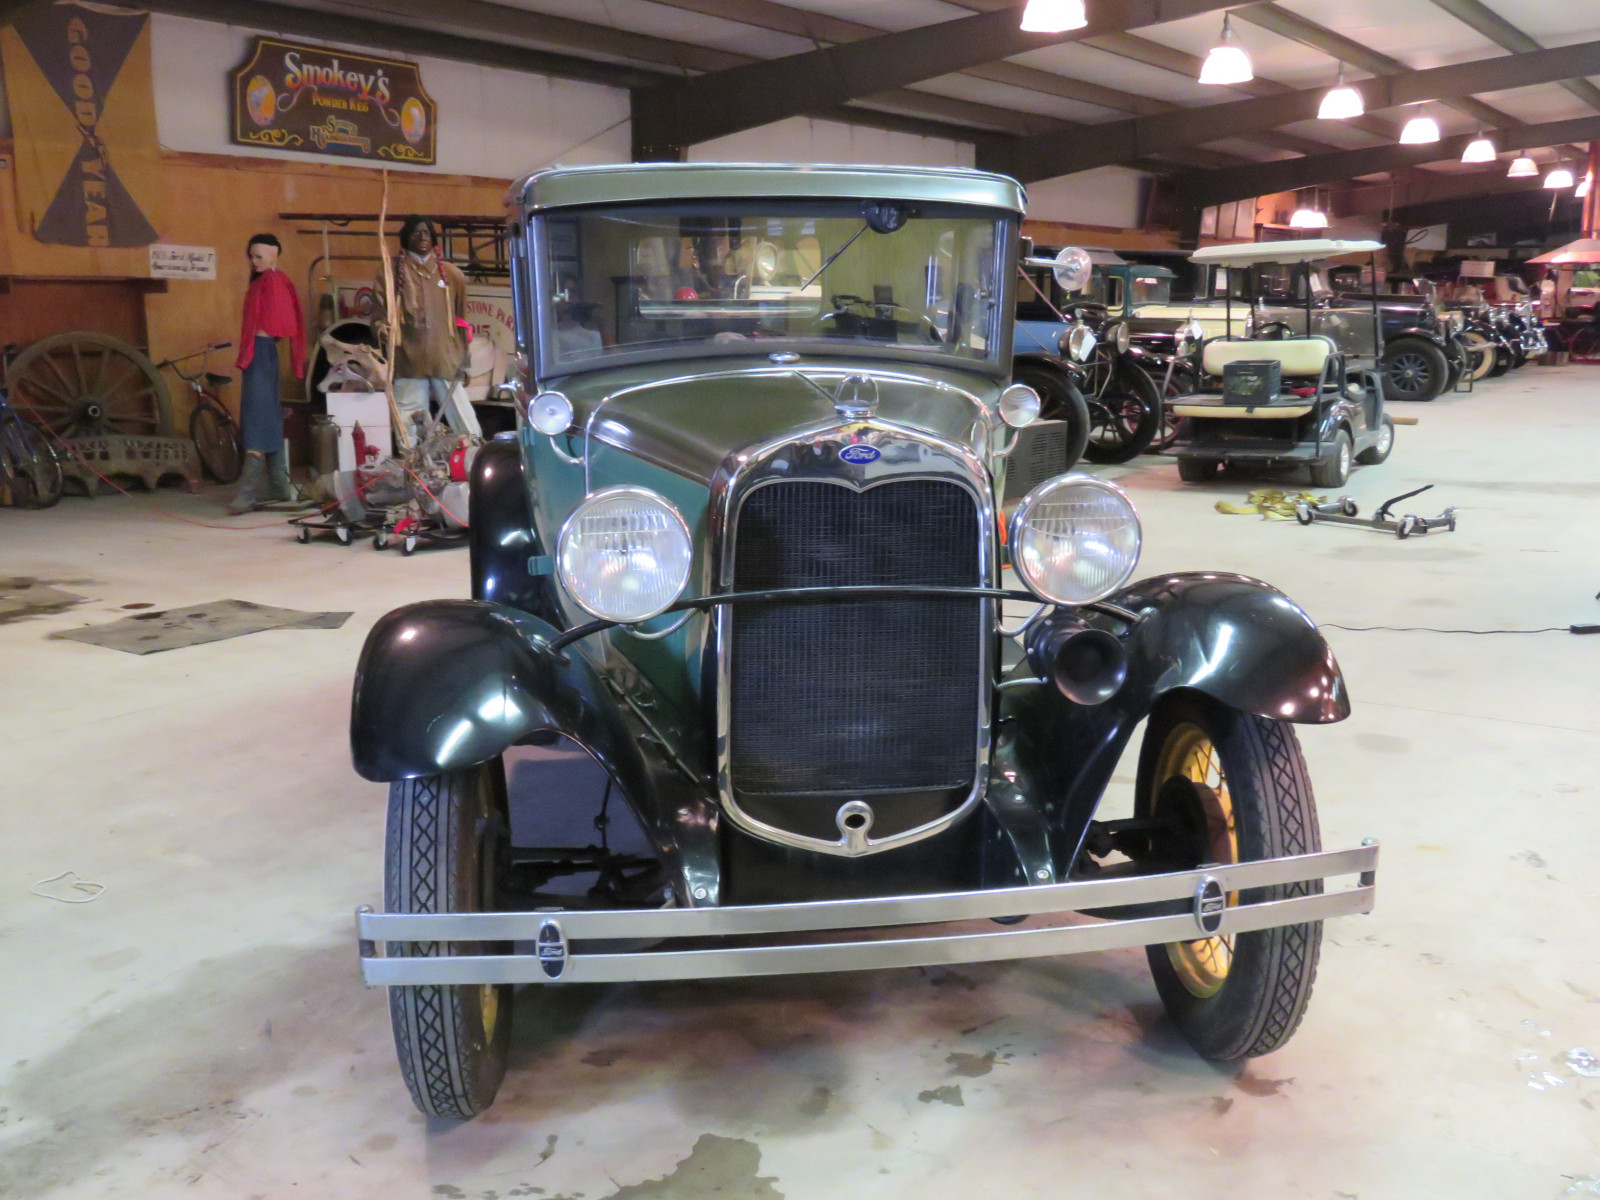 1930 Ford Model A Rumble Seat Coupe - Image 2